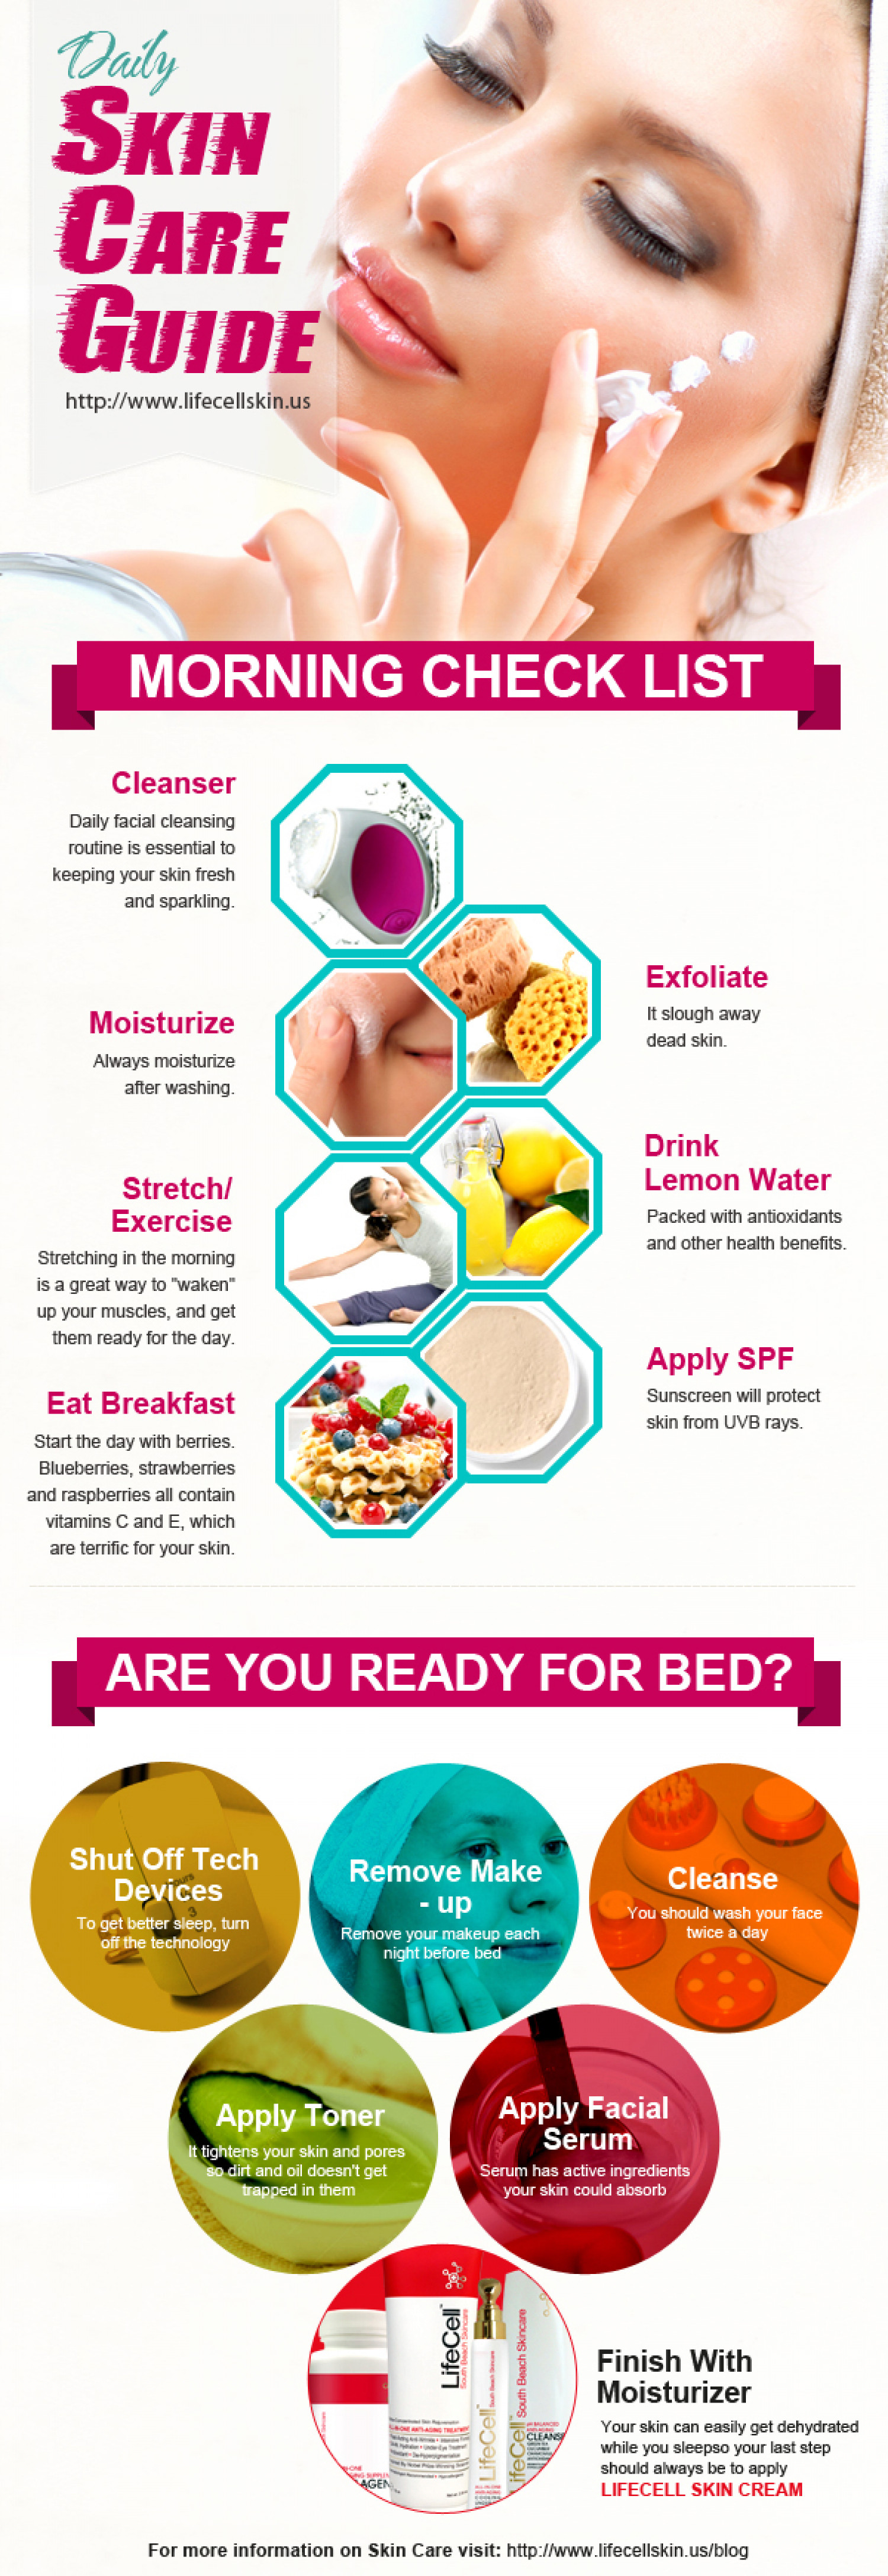 Daily Skin Care Guide Infographic